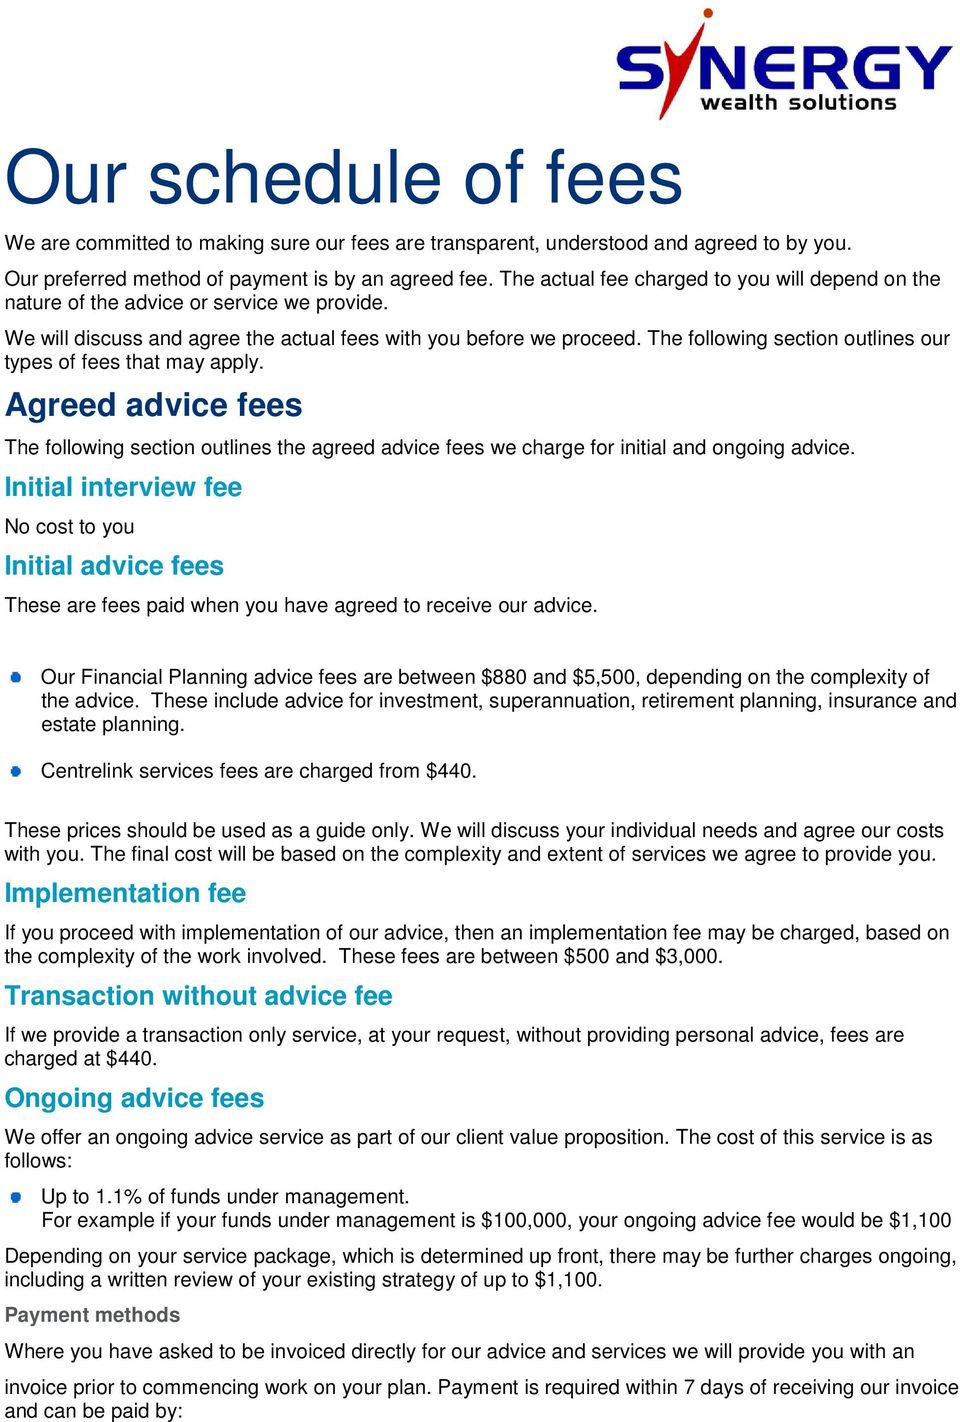 The following section outlines our types of fees that may apply. Agreed advice fees The following section outlines the agreed advice fees we charge for initial and ongoing advice.